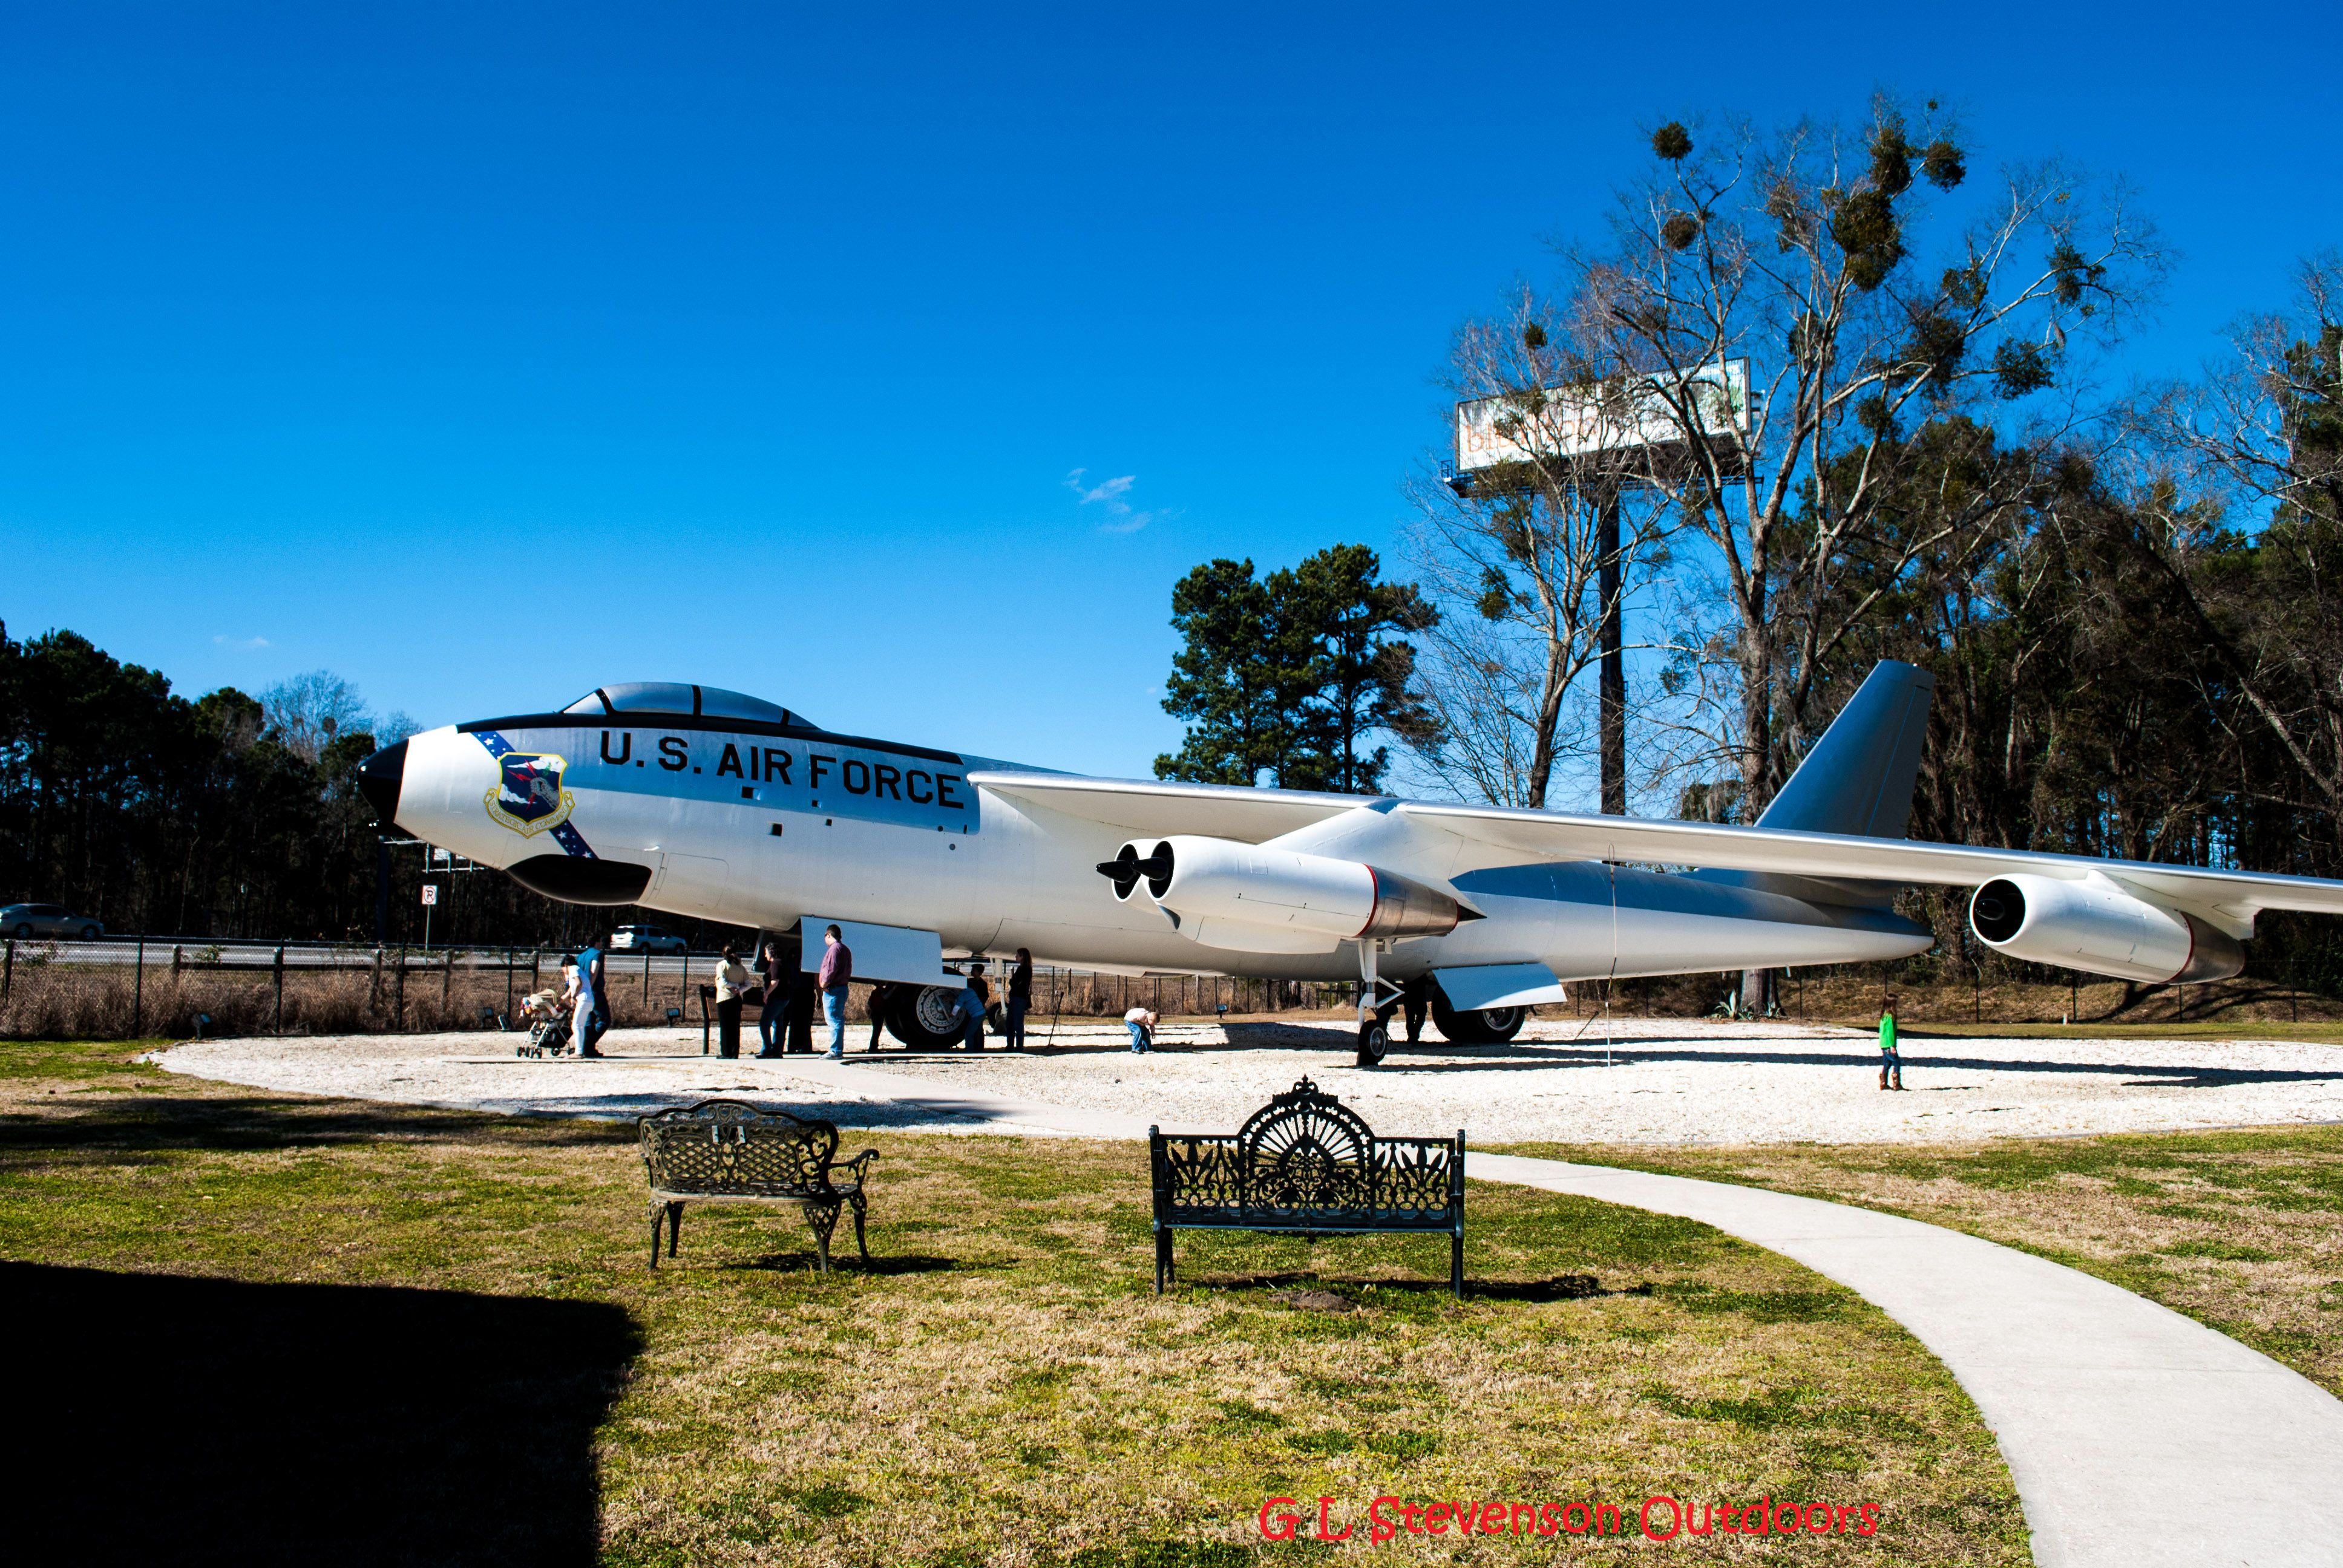 B47 Stratojet at the Mighty Eighth Air Force Museum The